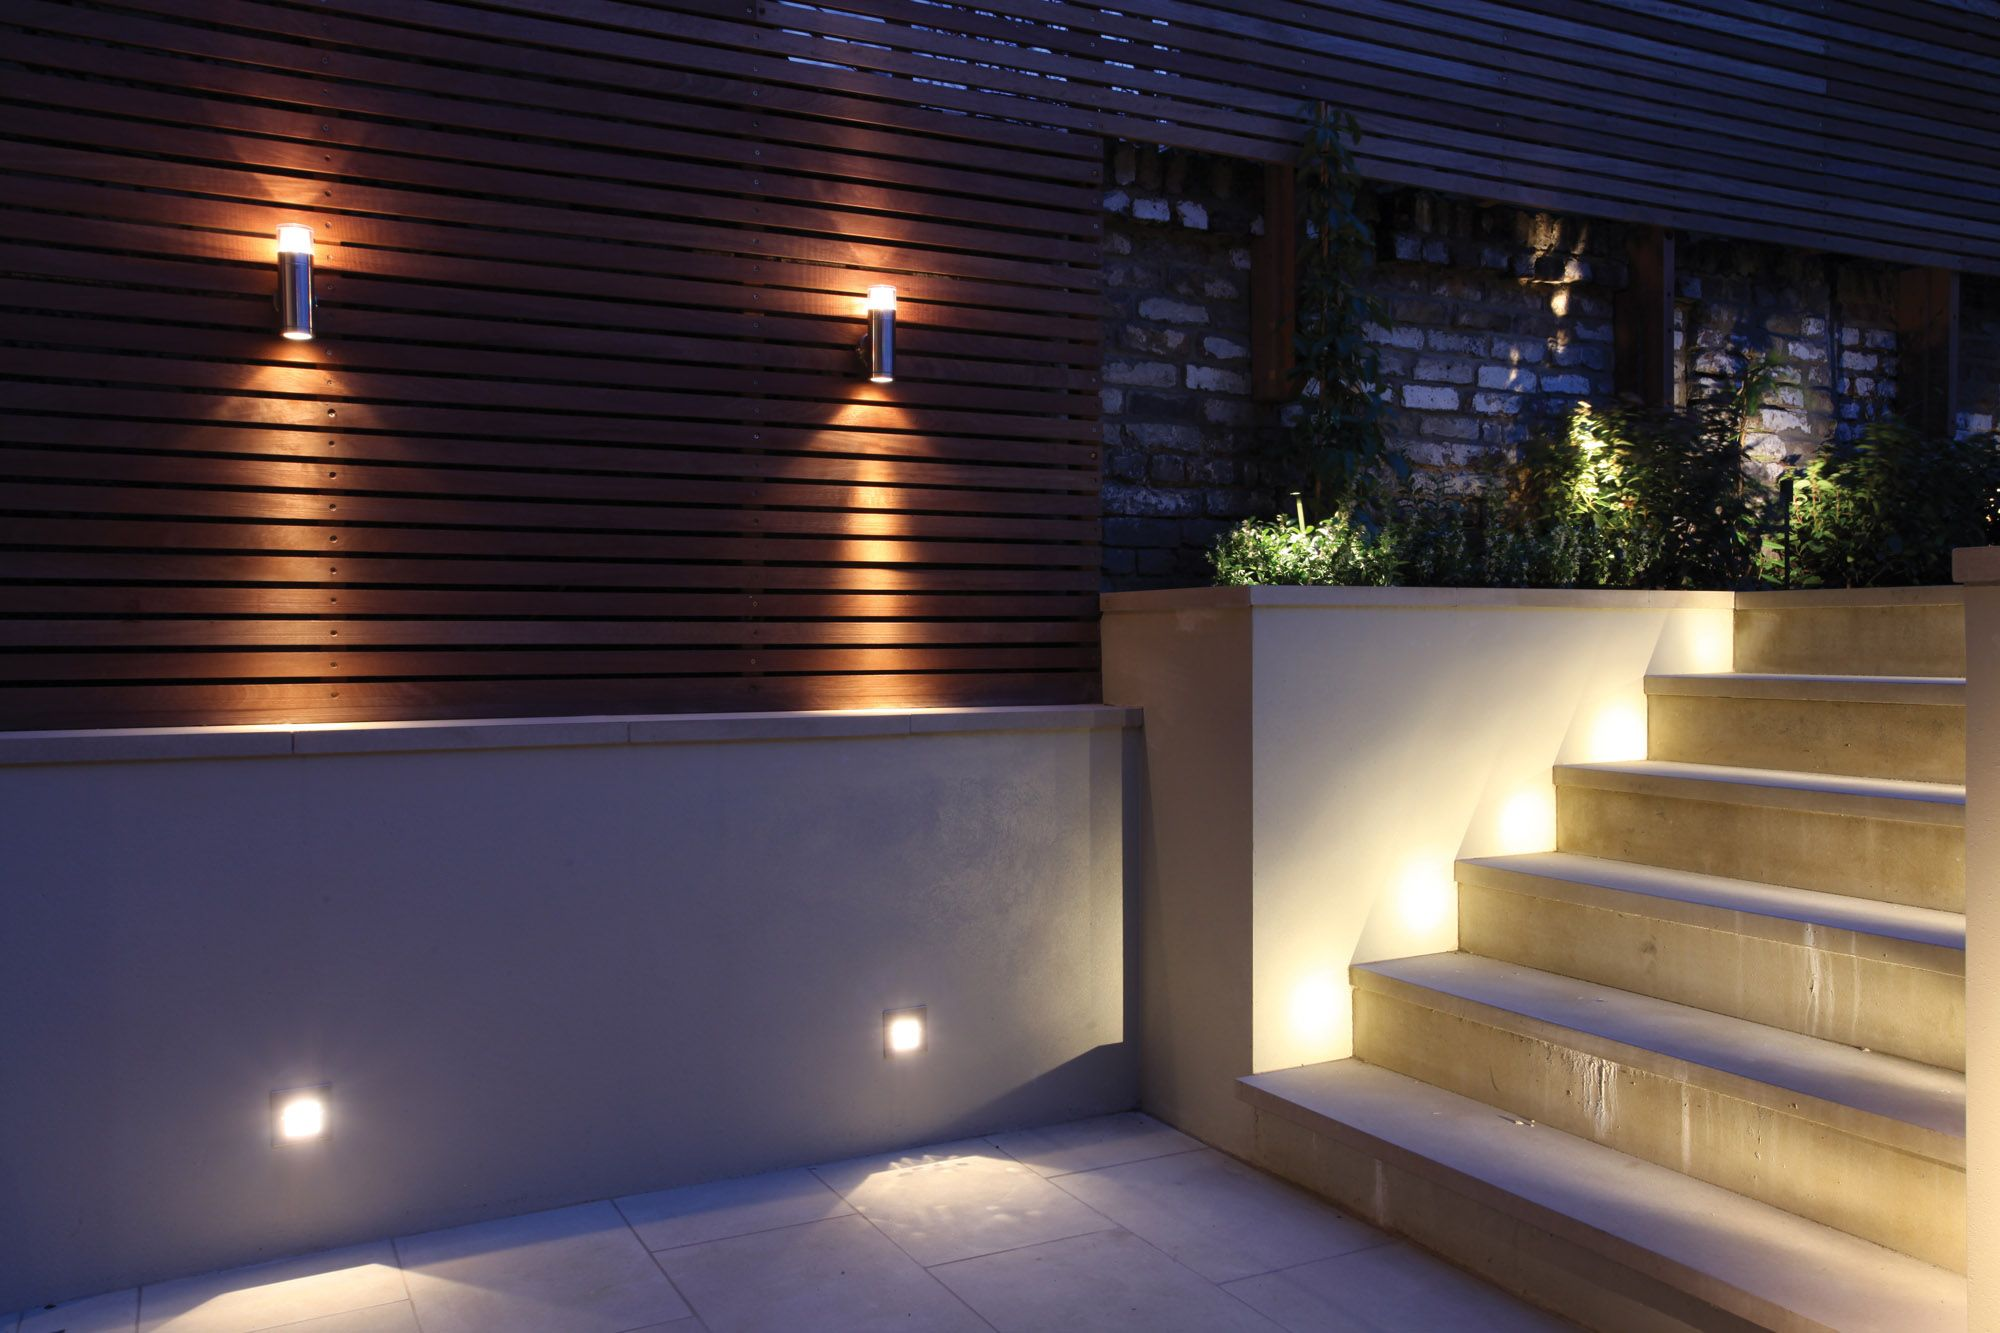 50 Inspirational Garden Lighting Ideas Fence lighting